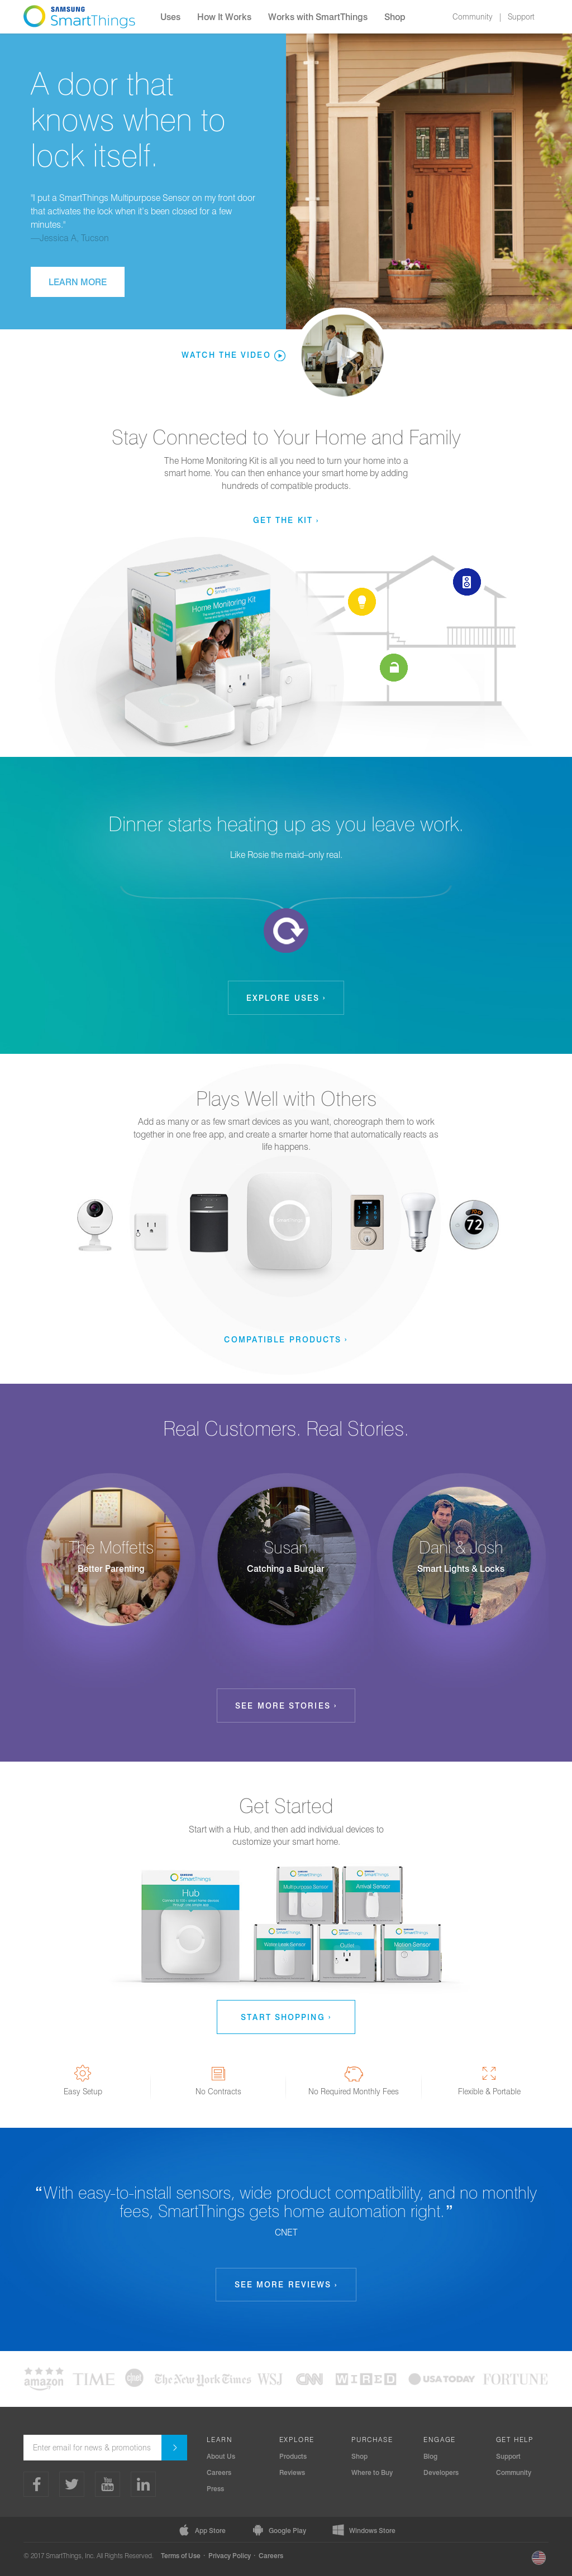 SmartThings Competitors, Revenue and Employees - Owler Company Profile